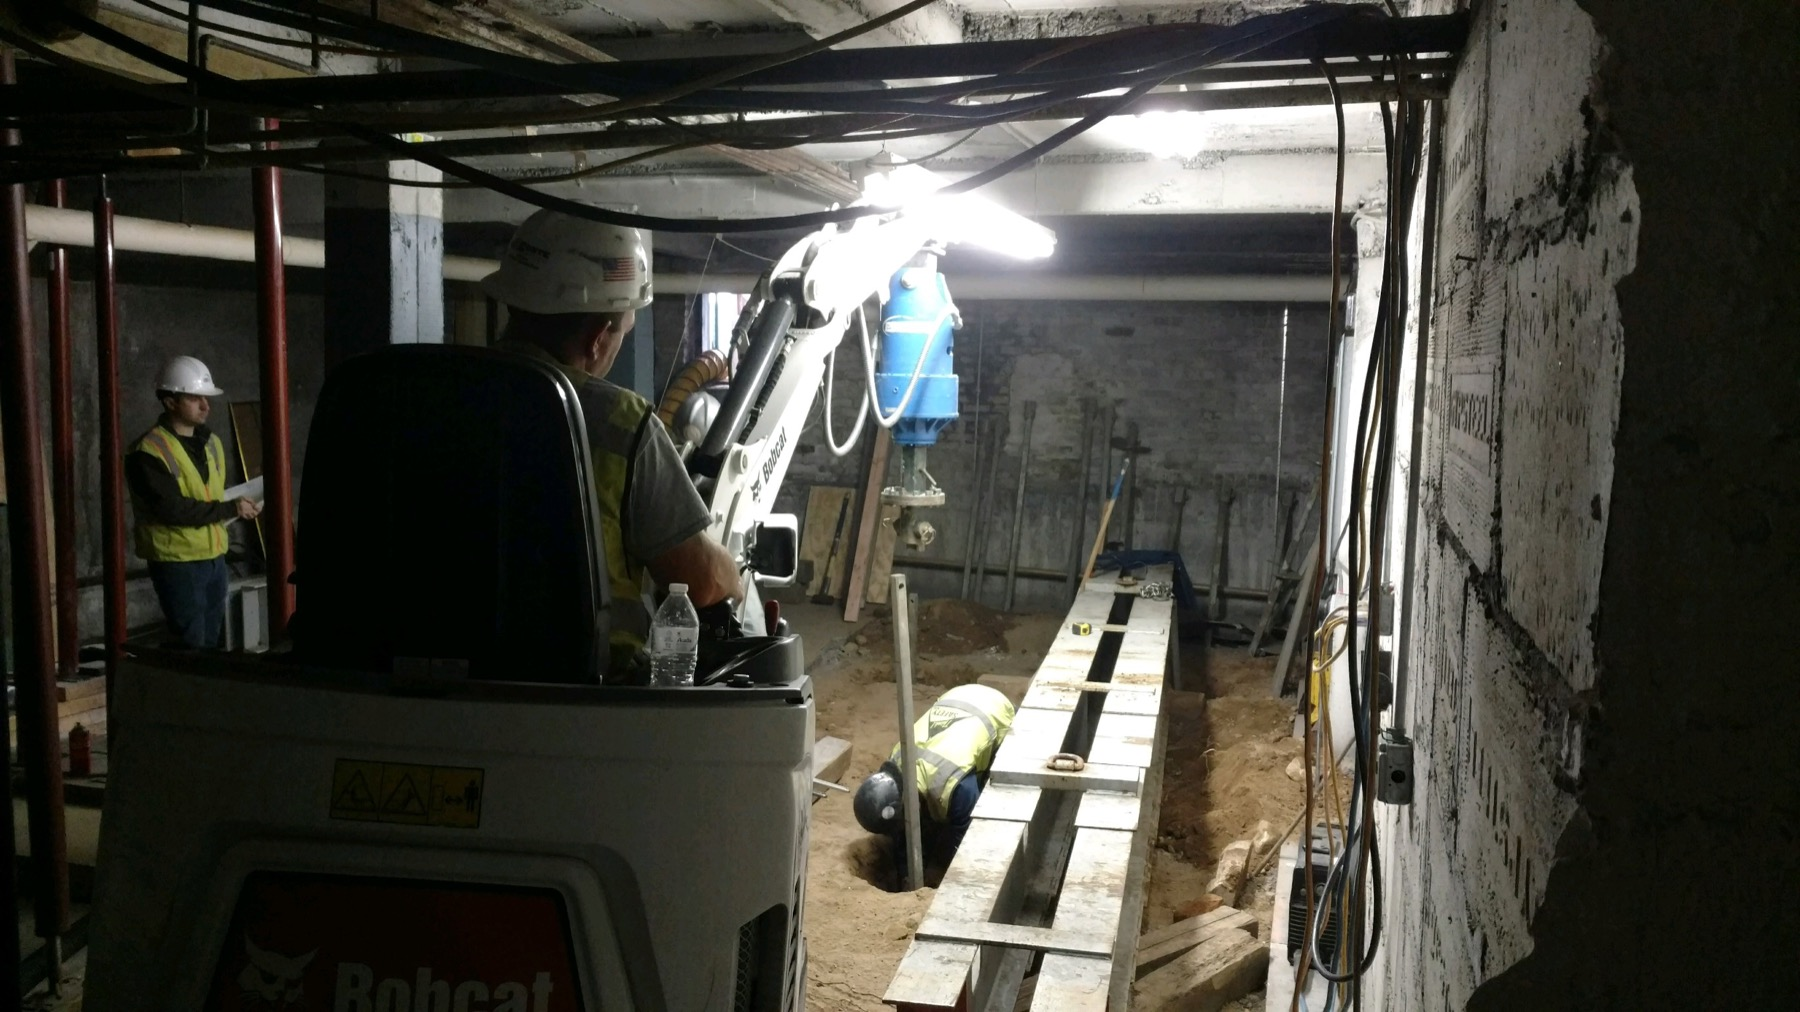 Load testing in a confined space